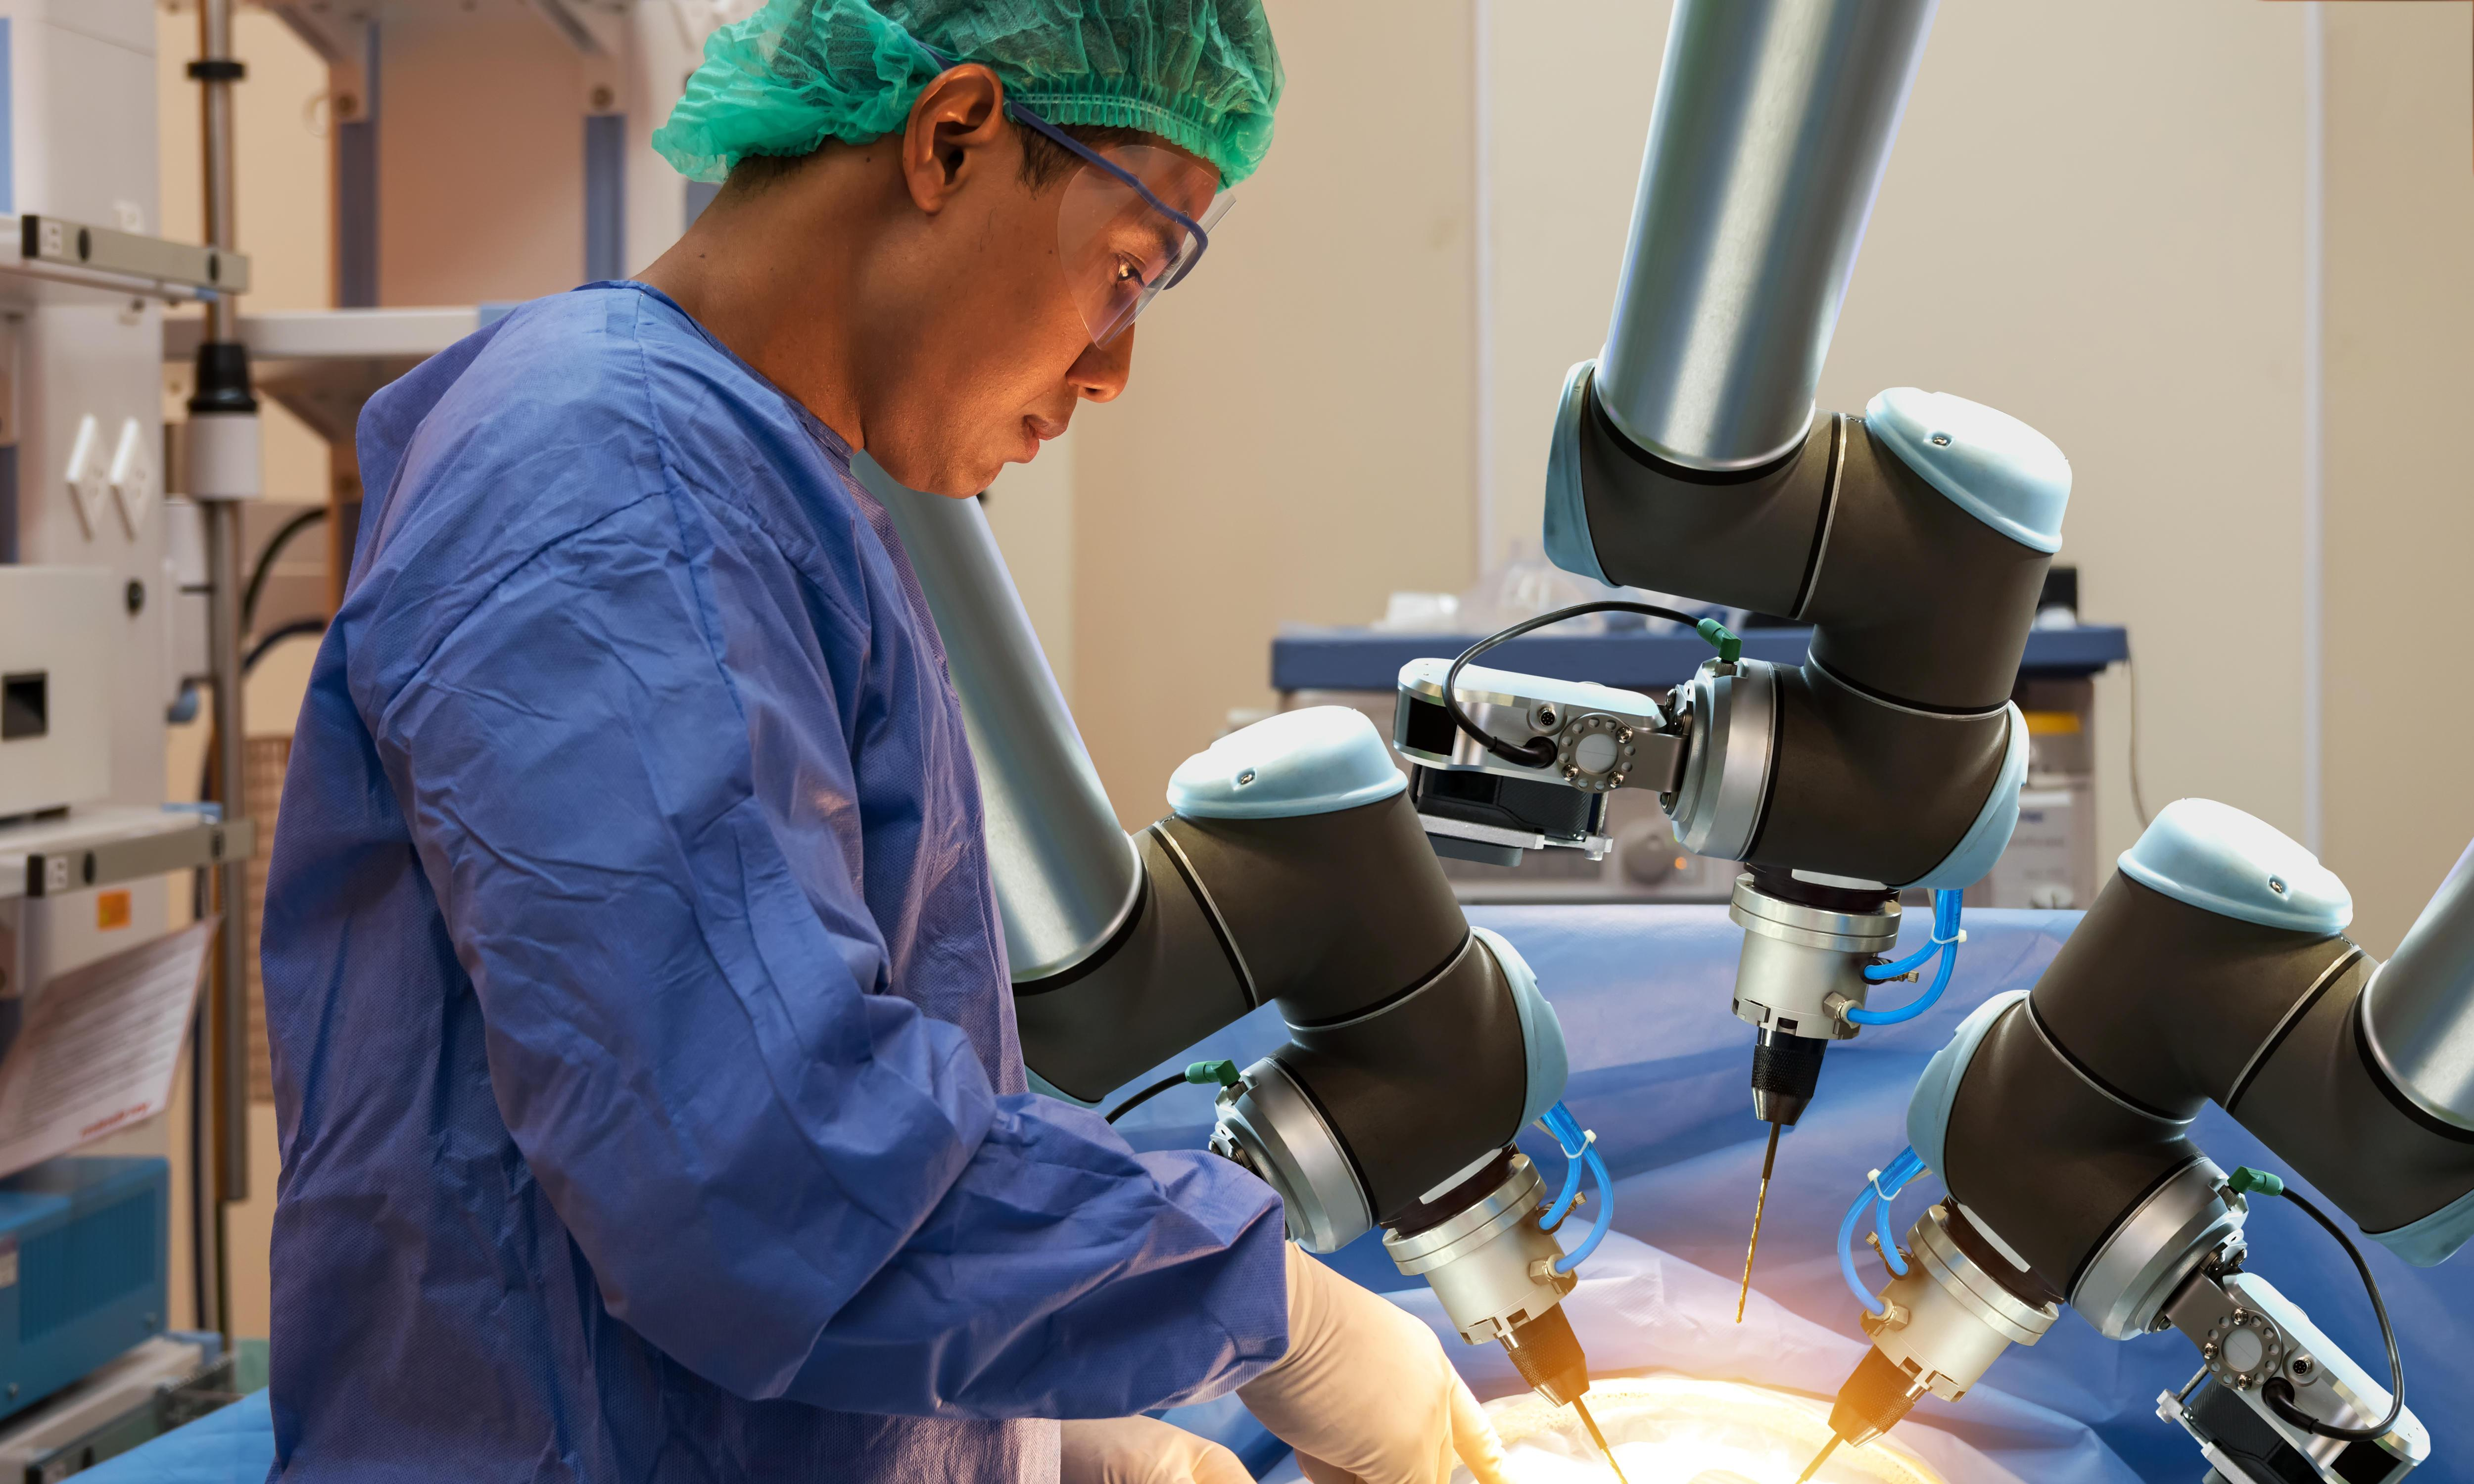 Will robots make doctors obsolete? Nothing could be further from the truth